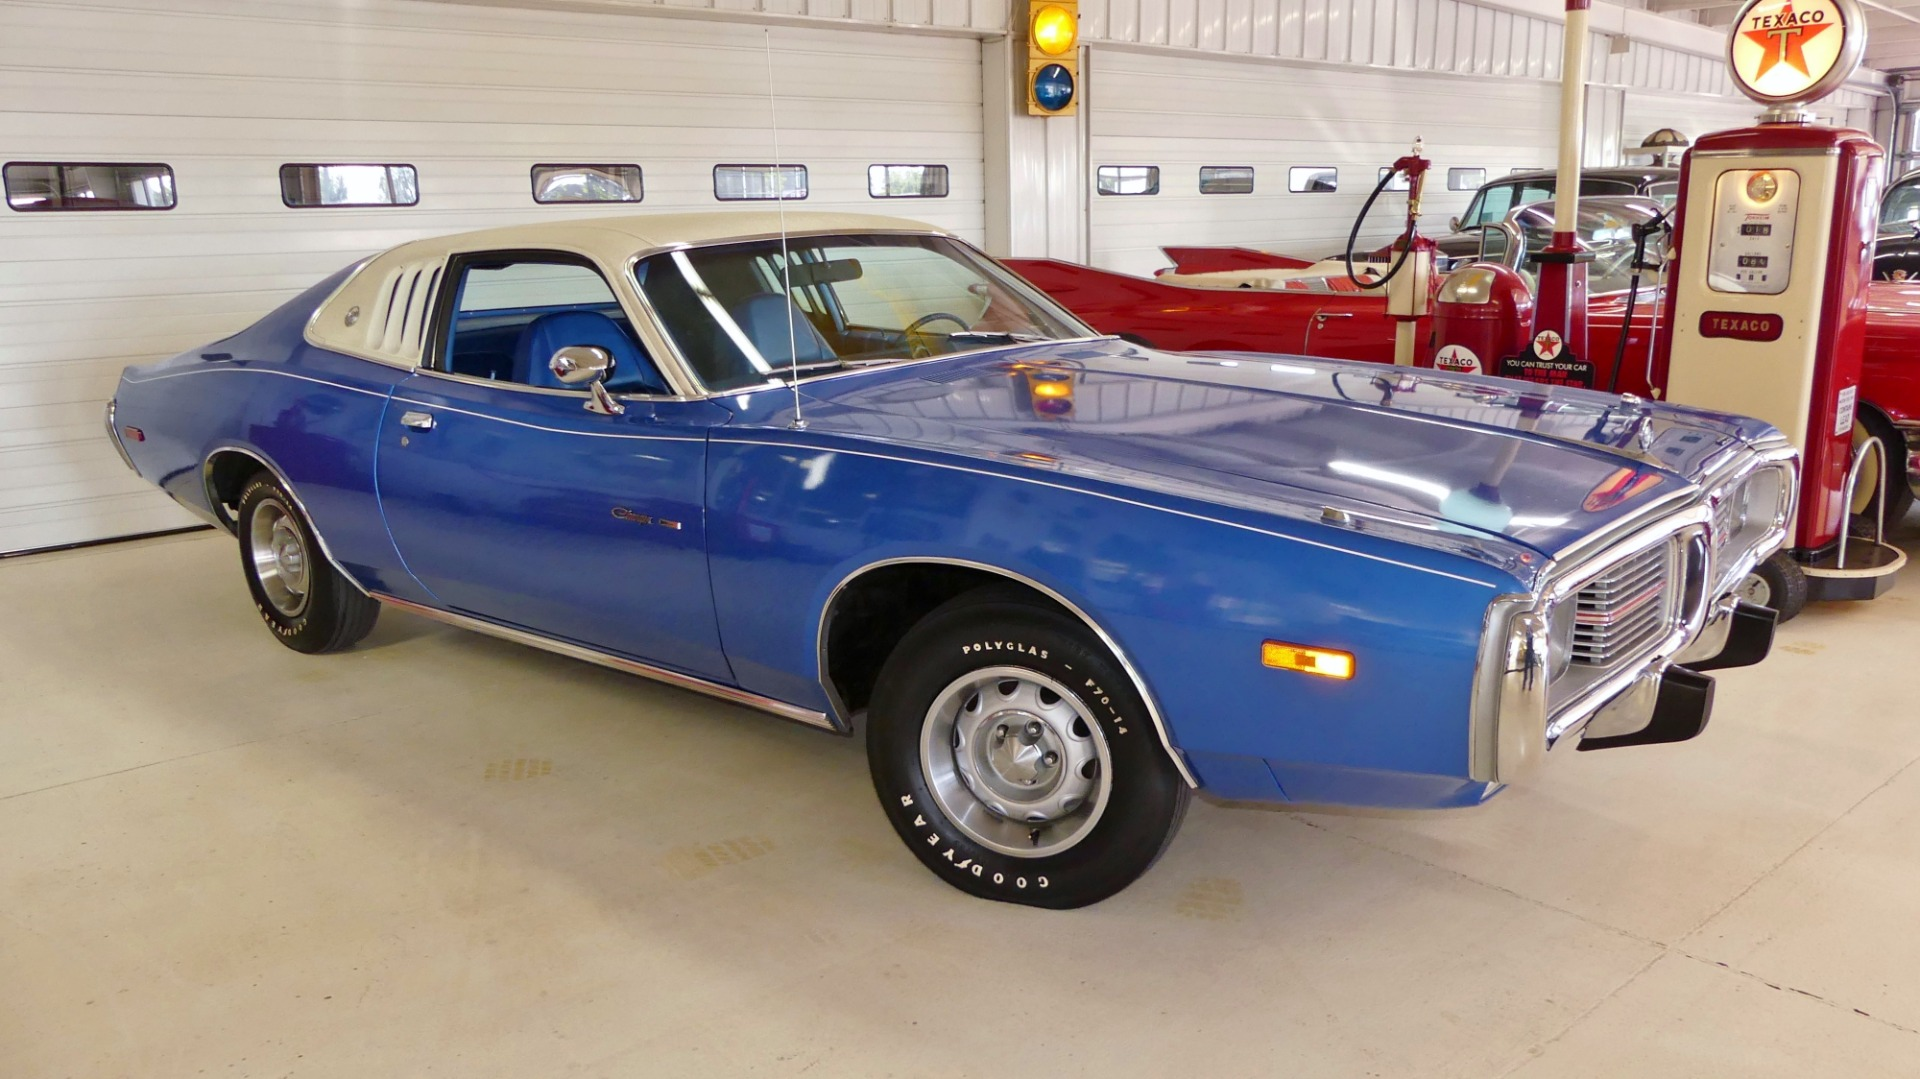 Used Dodge Charger for Sale Unique 1973 Dodge Charger Se Stock for Sale Near Columbus Oh